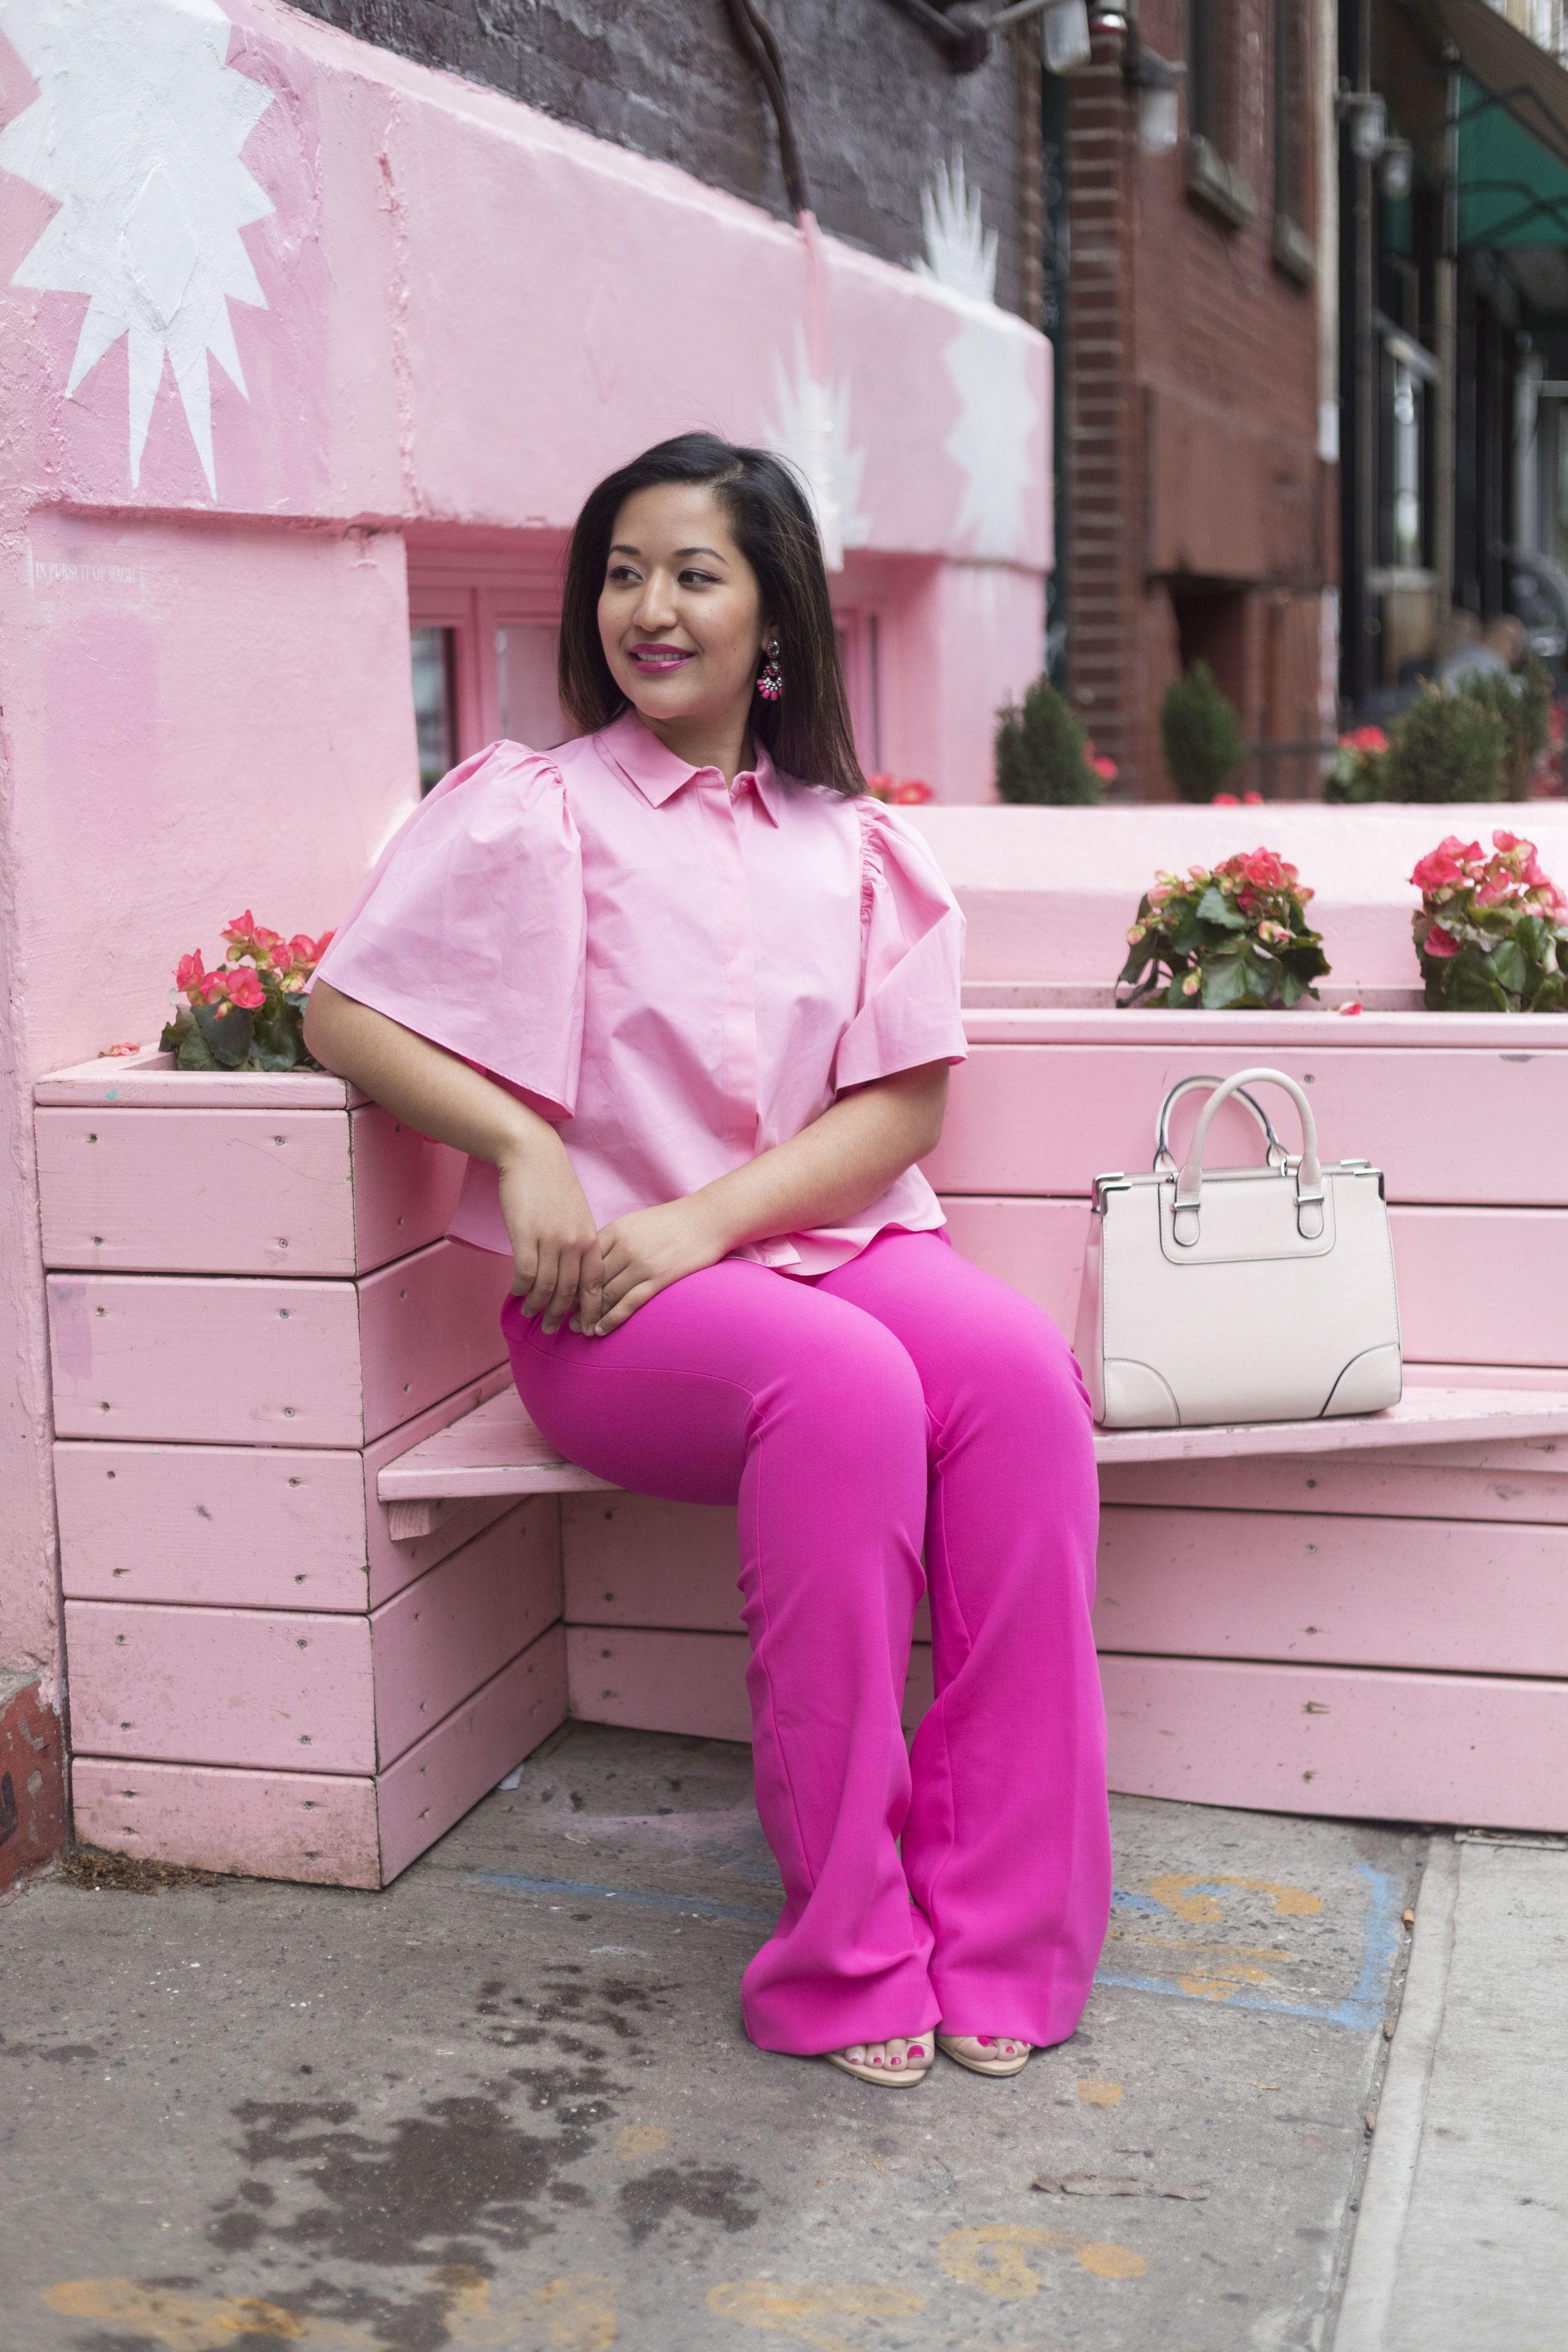 Krity S x 50 Shades of Pink5.jpg